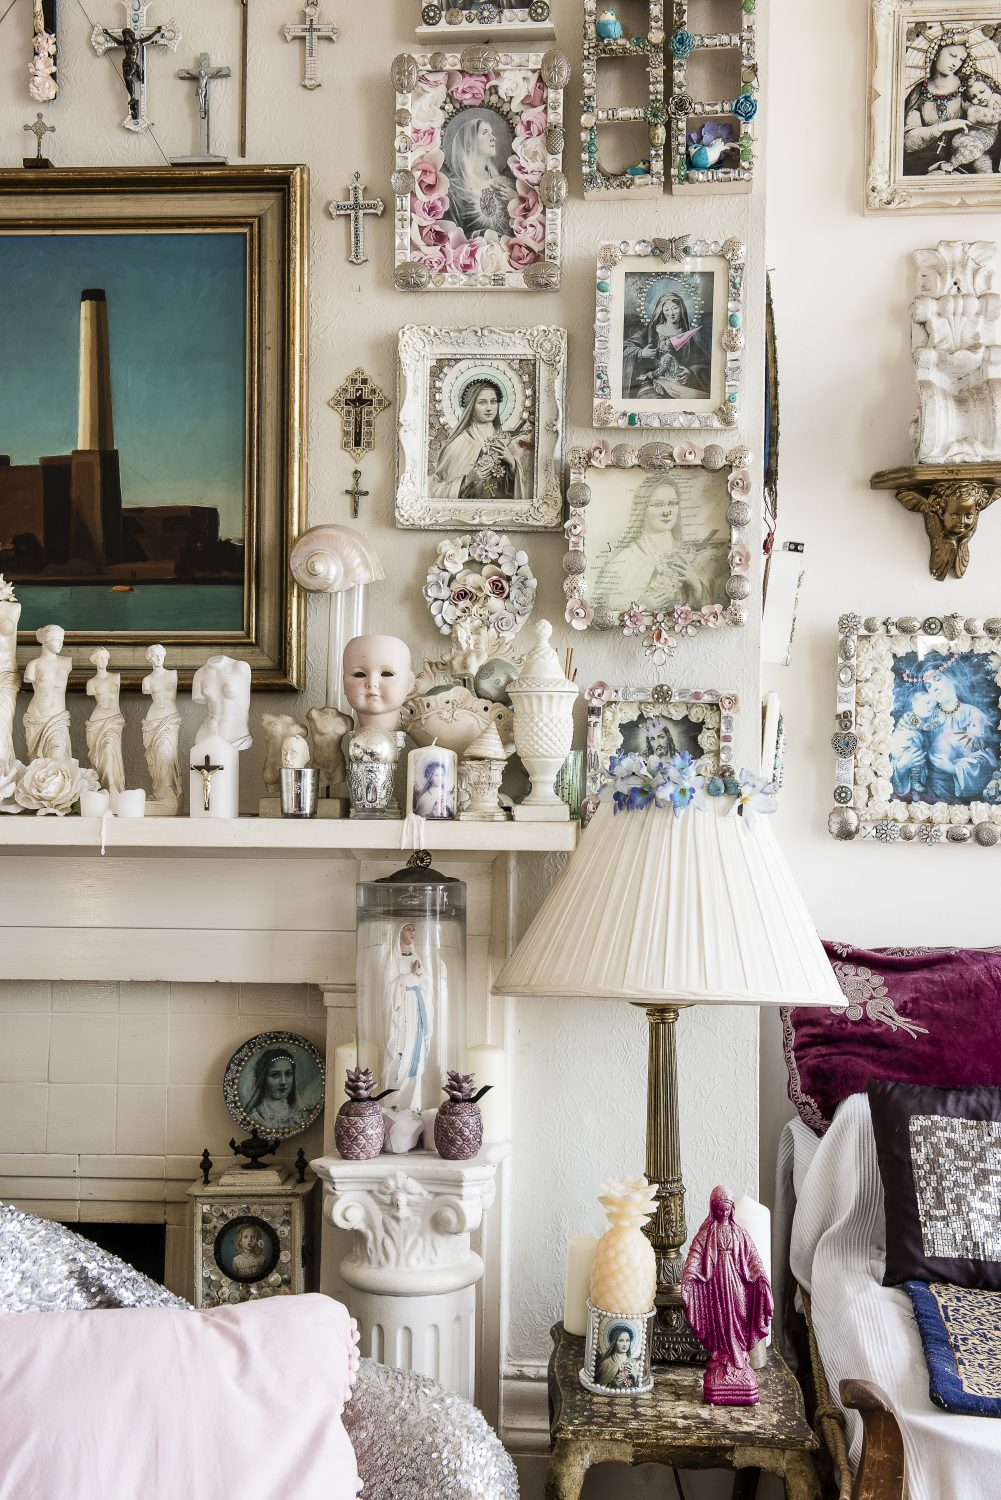 An ornate French mirror is surrounded by some of Sassy's artistic creations – pieces of religious iconography with playful twists of flowers, shells, crystals and lights, all in her signature pale colour scheme of white, pink and blue